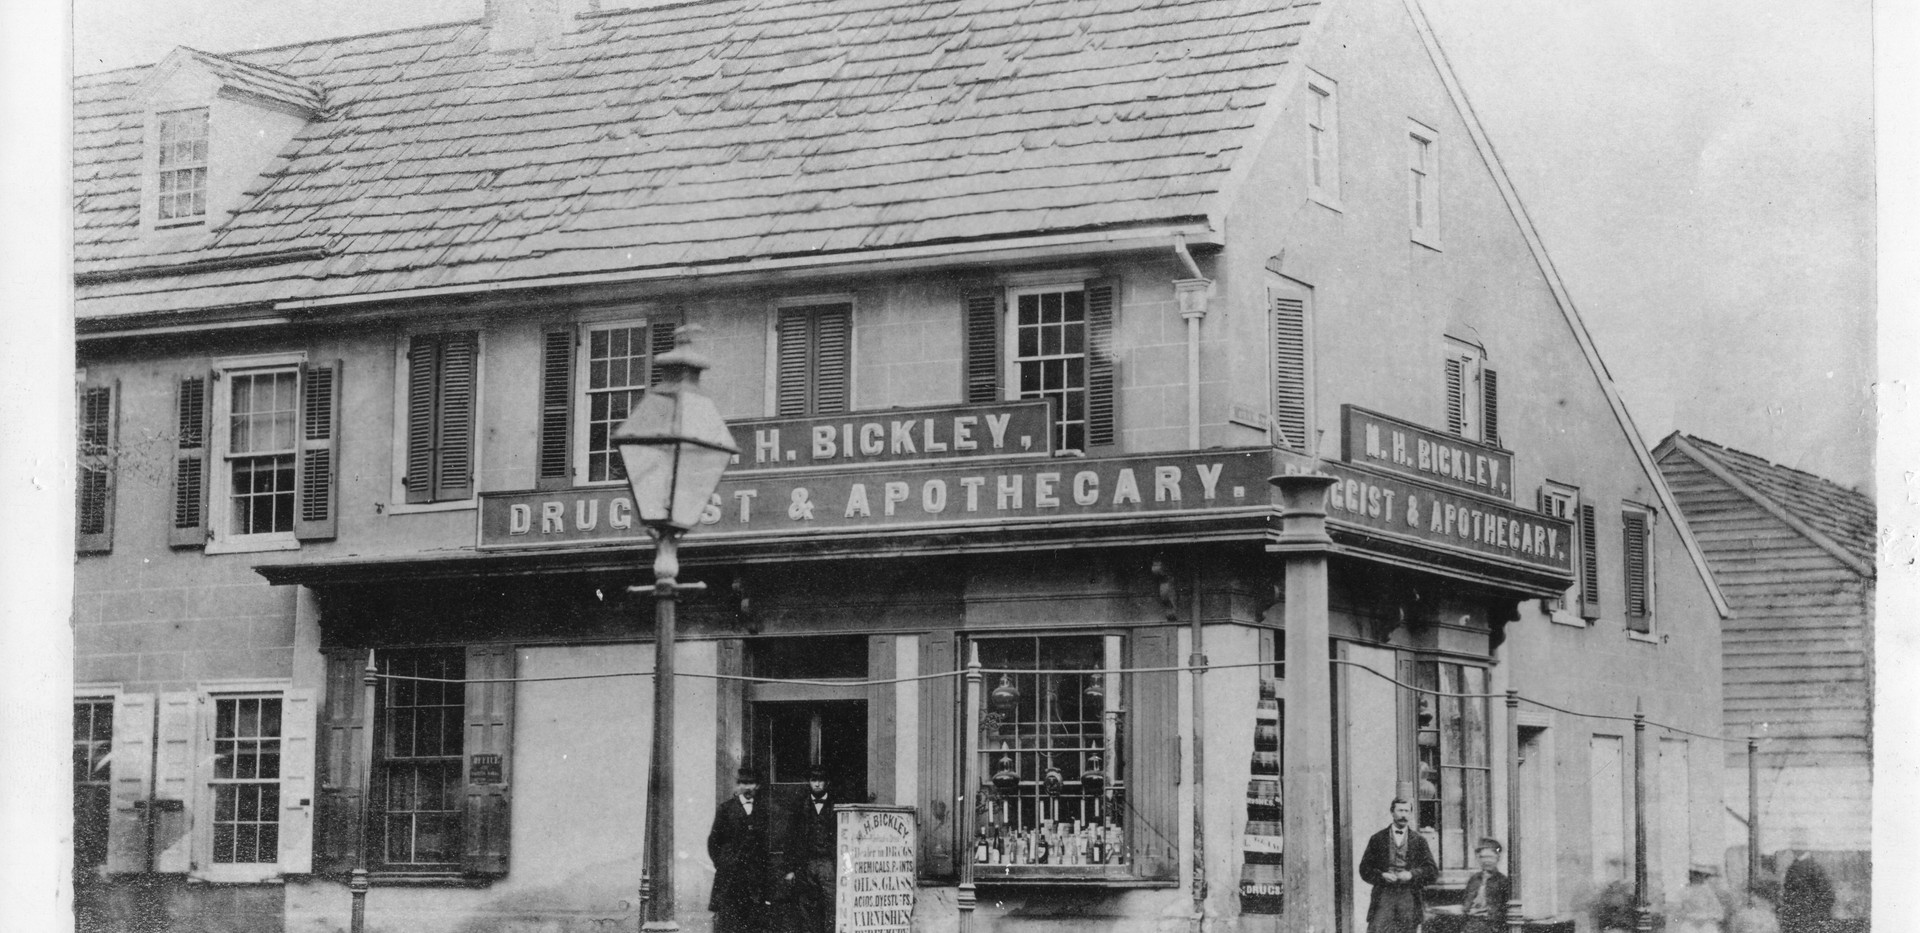 Bickley Drug Store 1860s